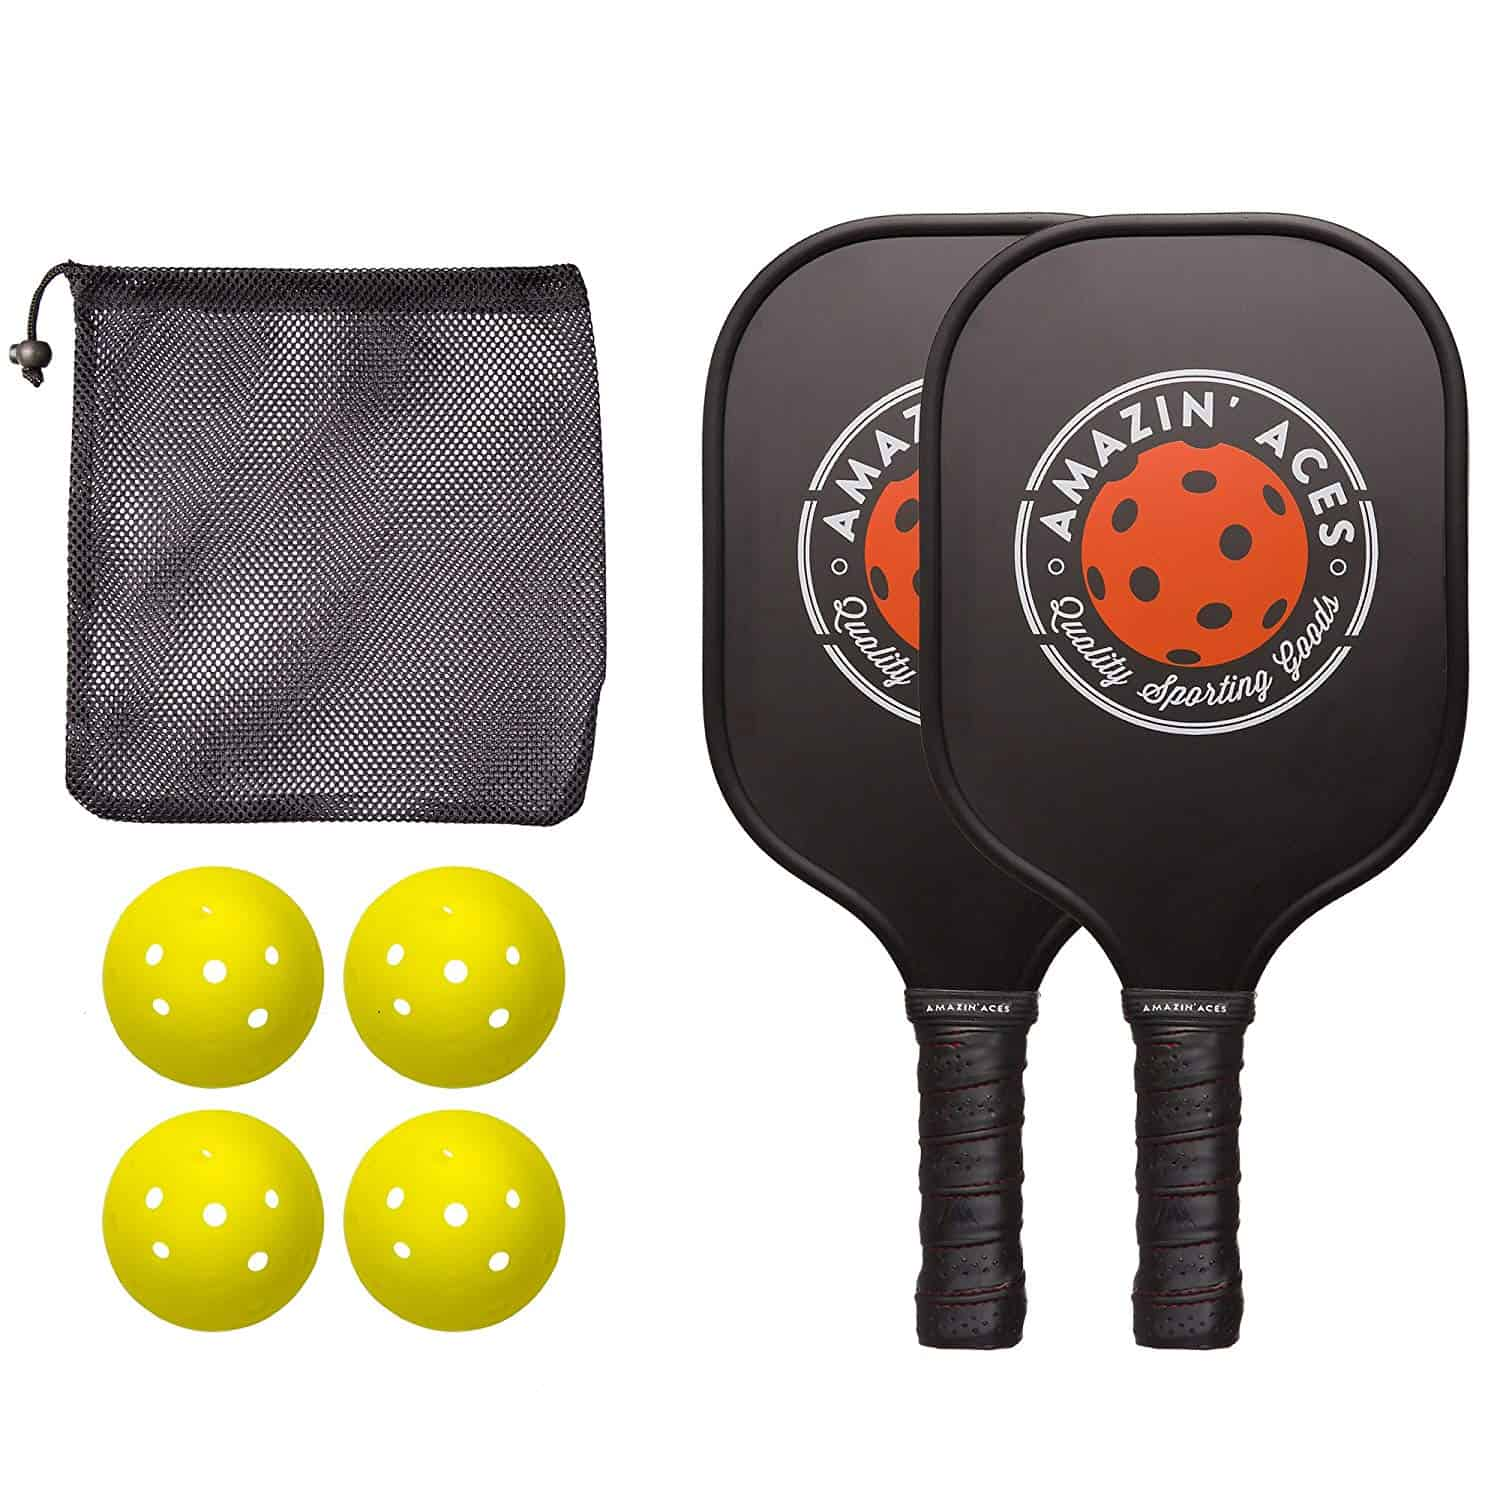 Amazin' Aces Pickleball Paddle Bundle Set